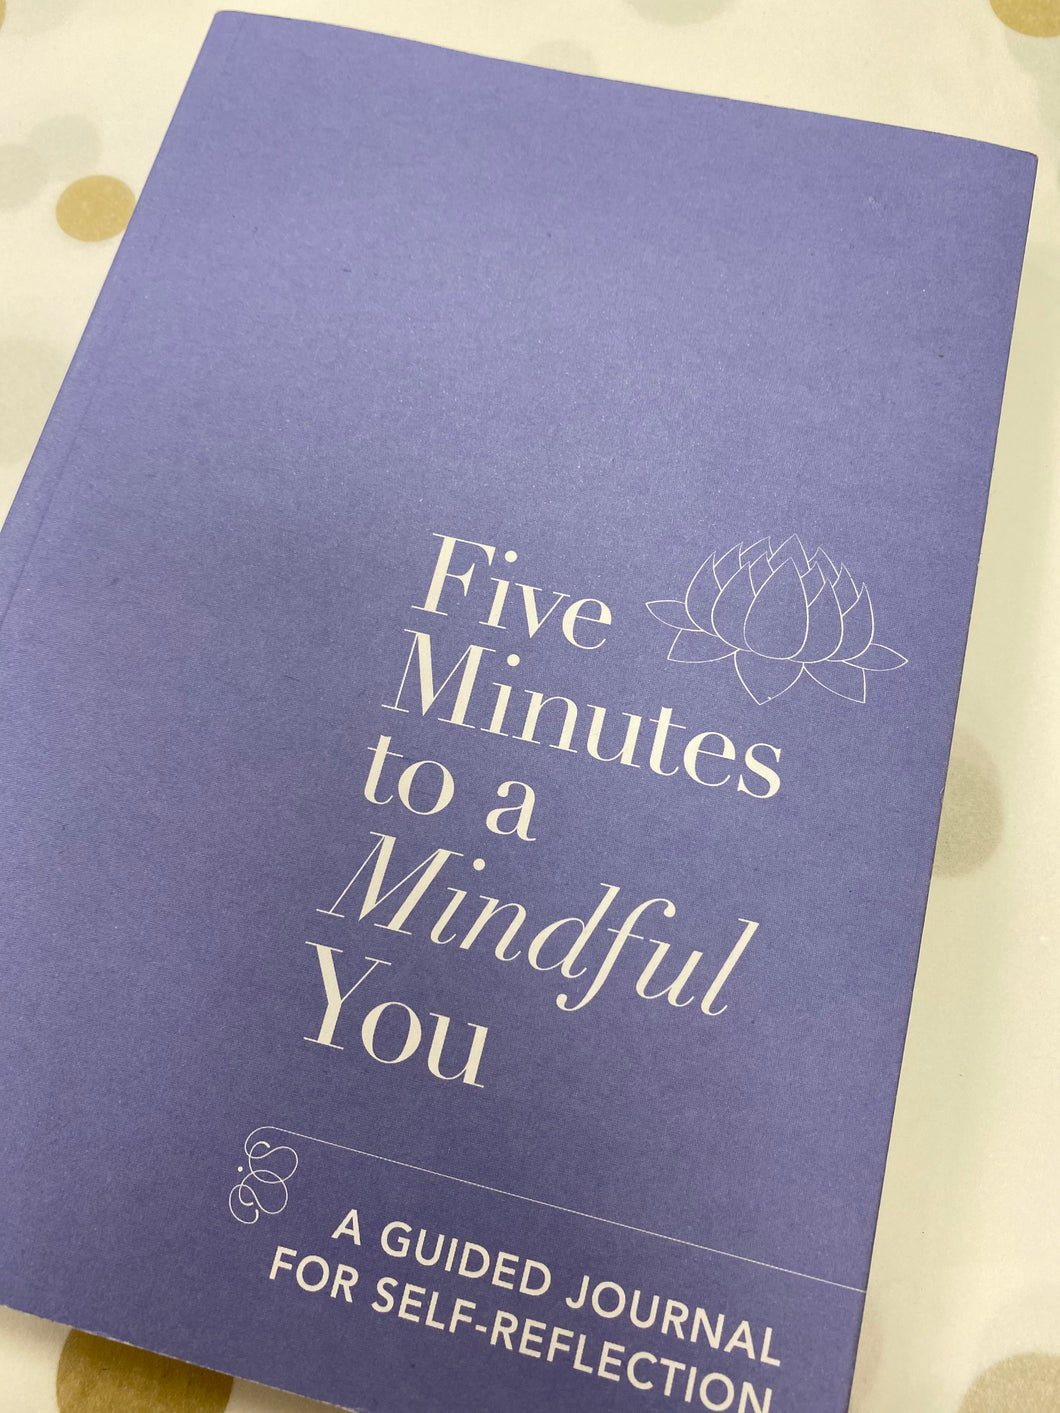 Book, Five minutes to a Mindful You